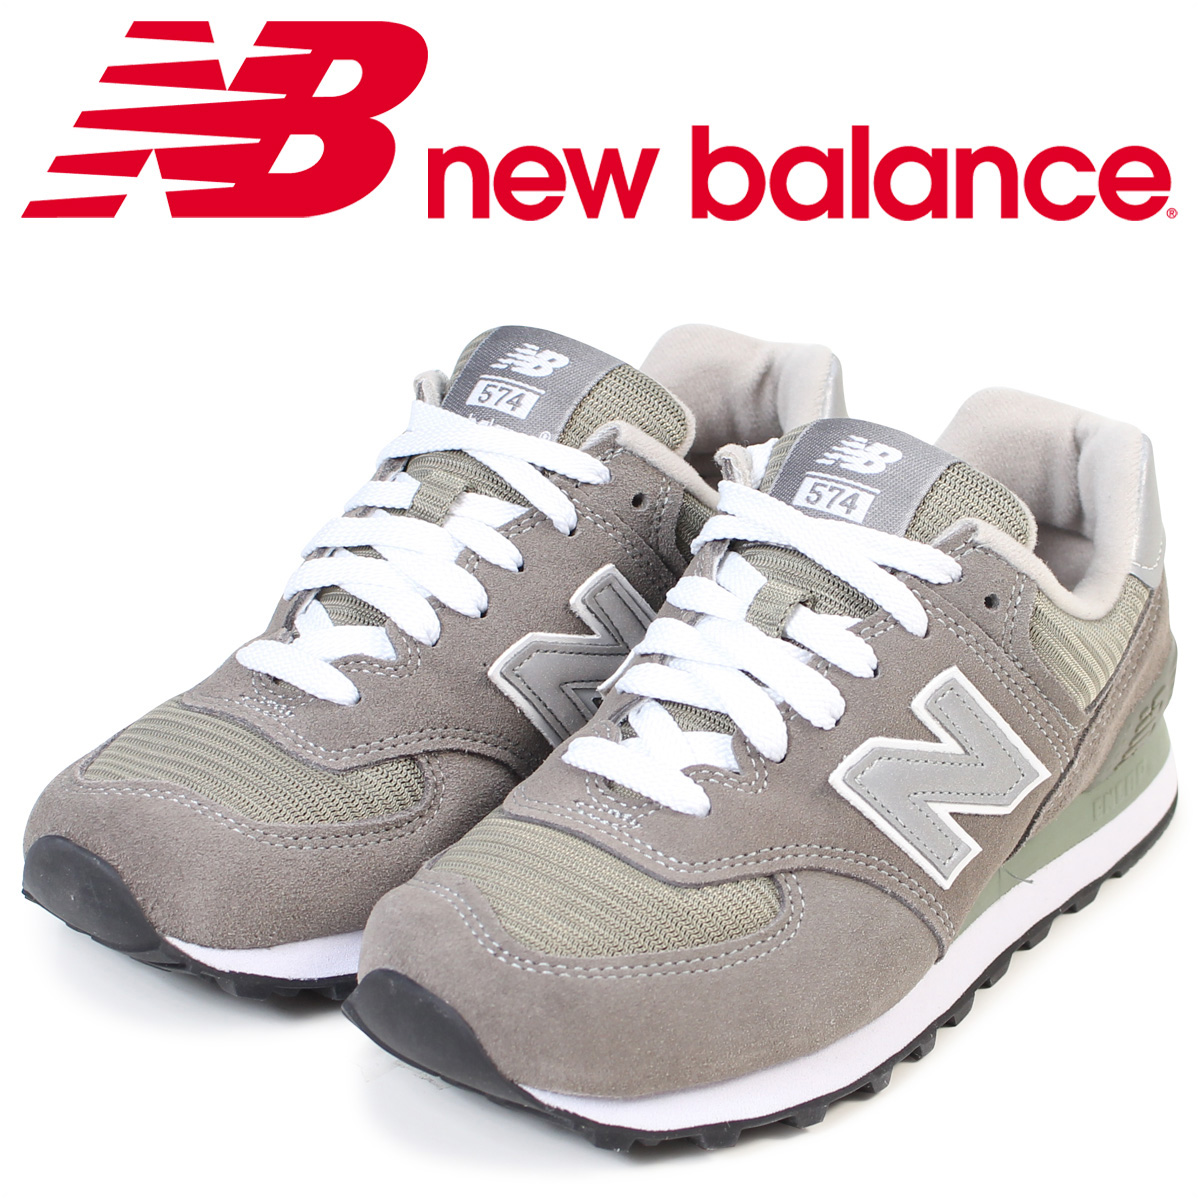 canada mens new balance 574 grey netherlands e32c5 7fb0b